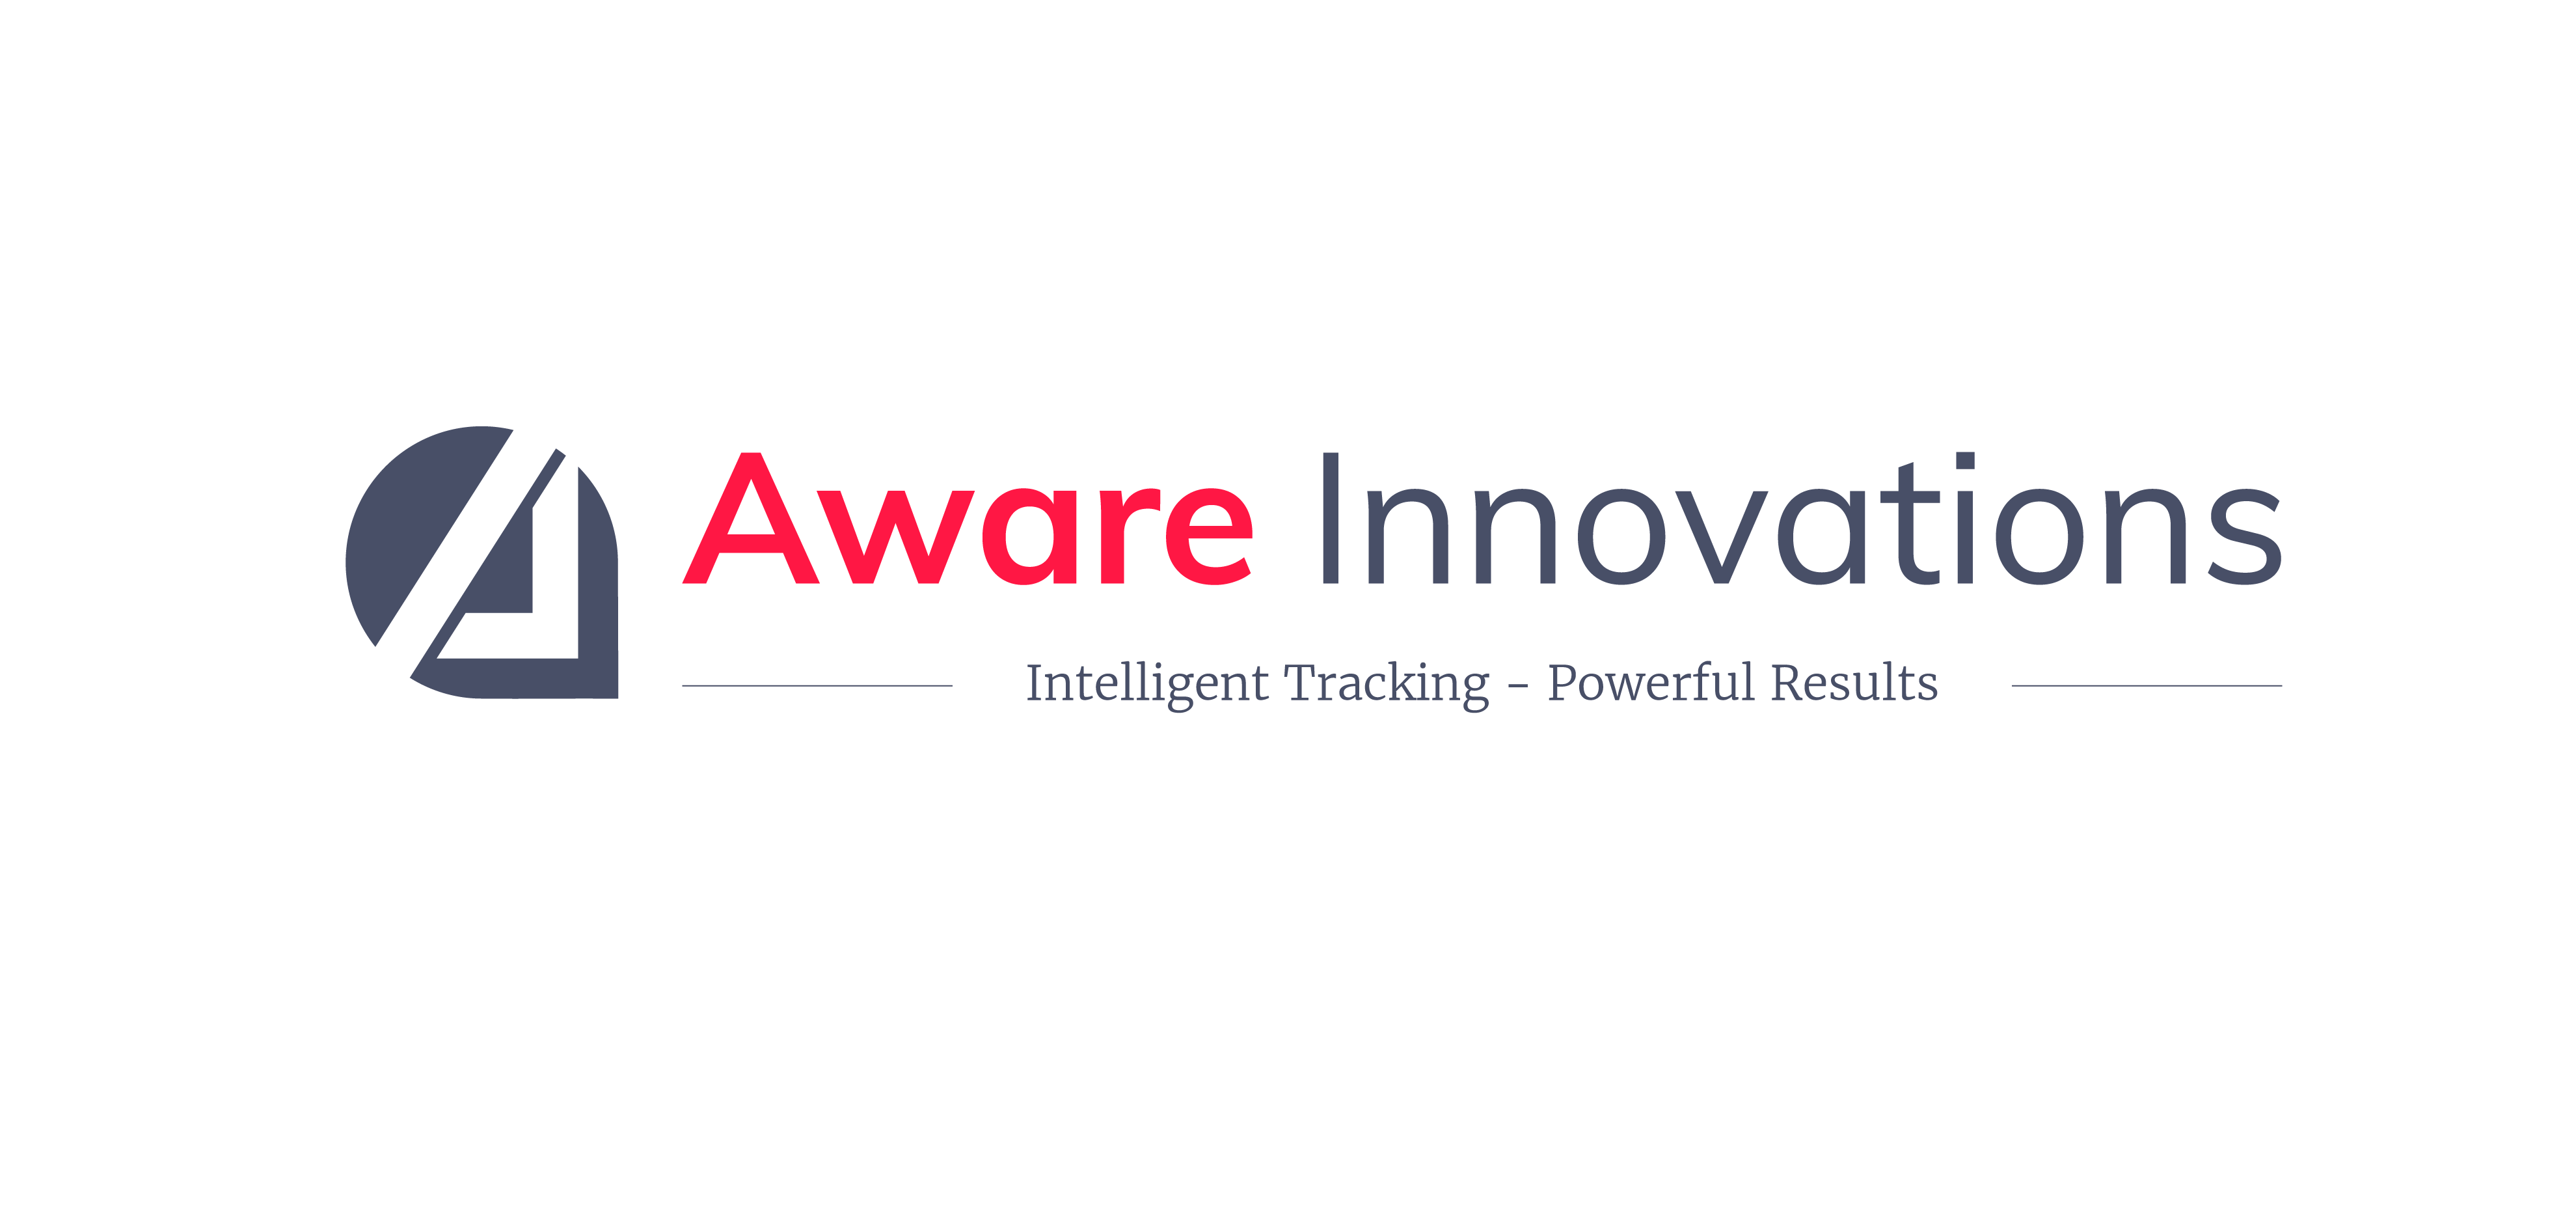 Aware Innovations